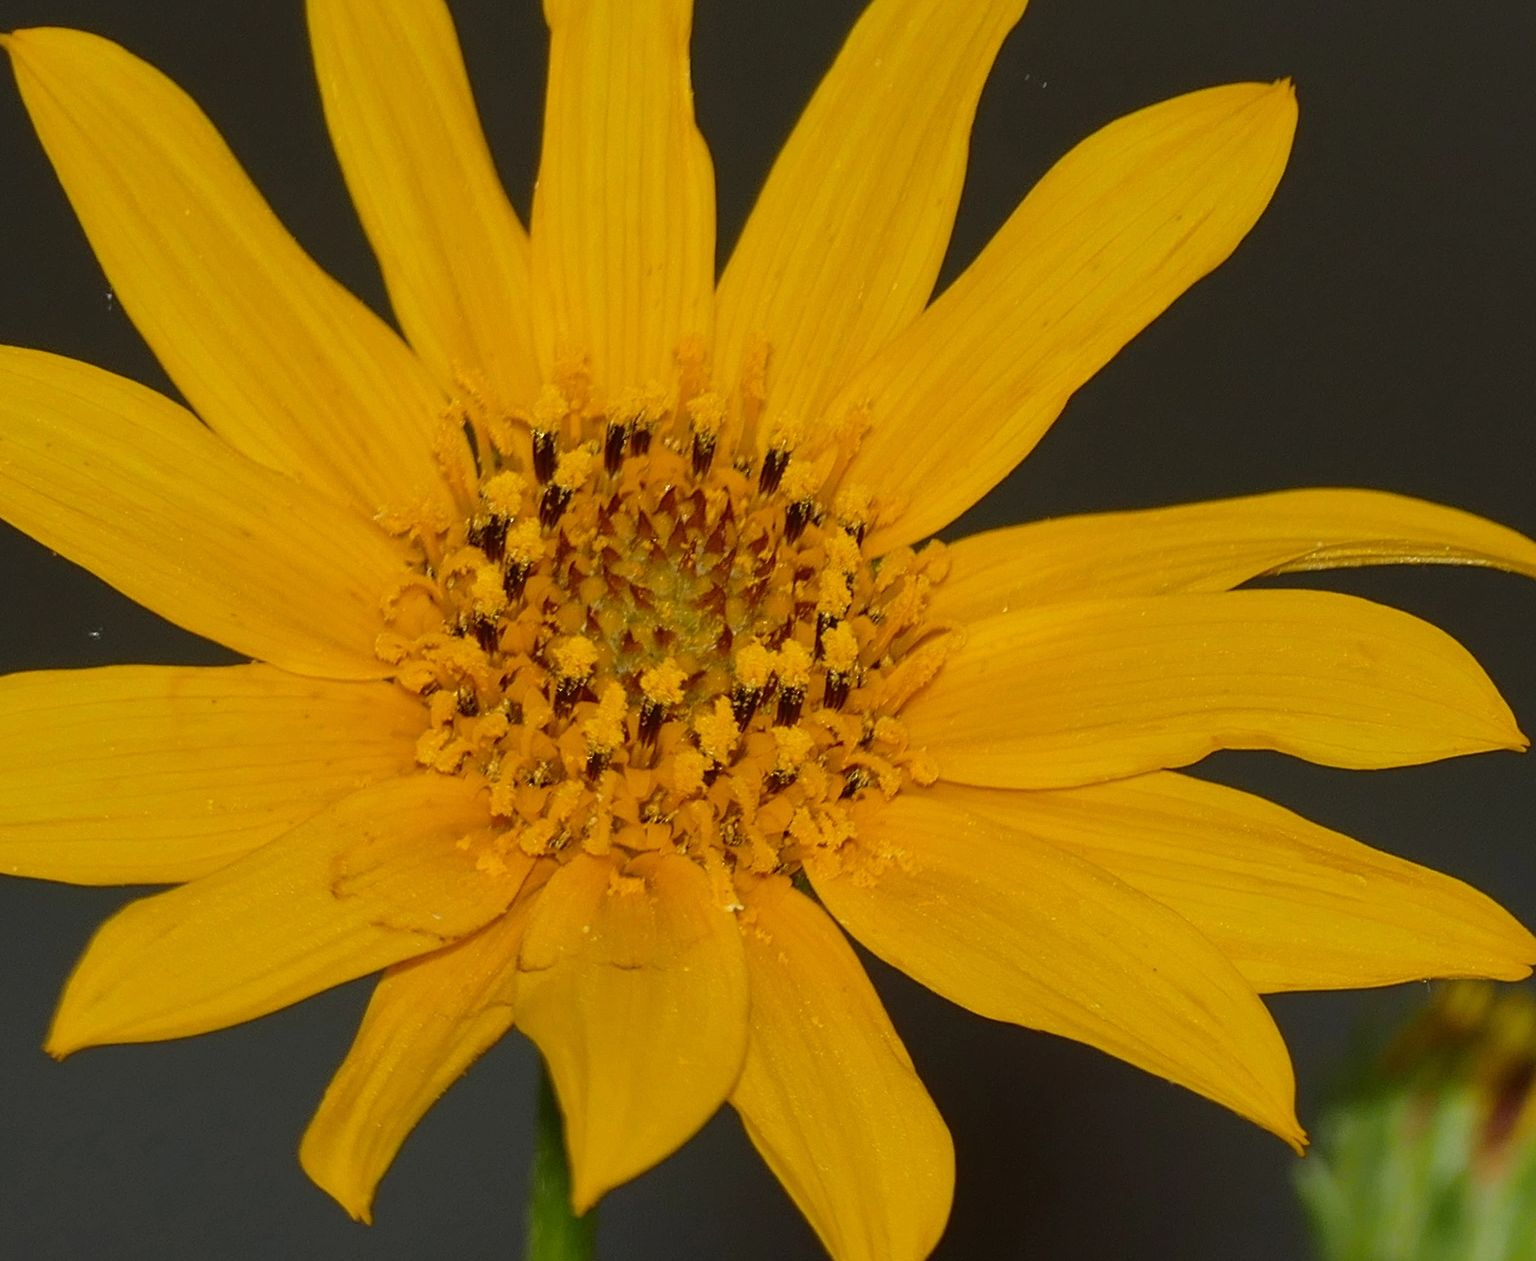 "{""blocks"":[{""key"":""fkr9c"",""text"":"" Helianthus occidentalis few leaf Western Sunflower - potted plants  john@easywildflowers.com \t "",""type"":""unstyled"",""depth"":0,""inlineStyleRanges"":[],""entityRanges"":[],""data"":{}}],""entityMap"":{}}"